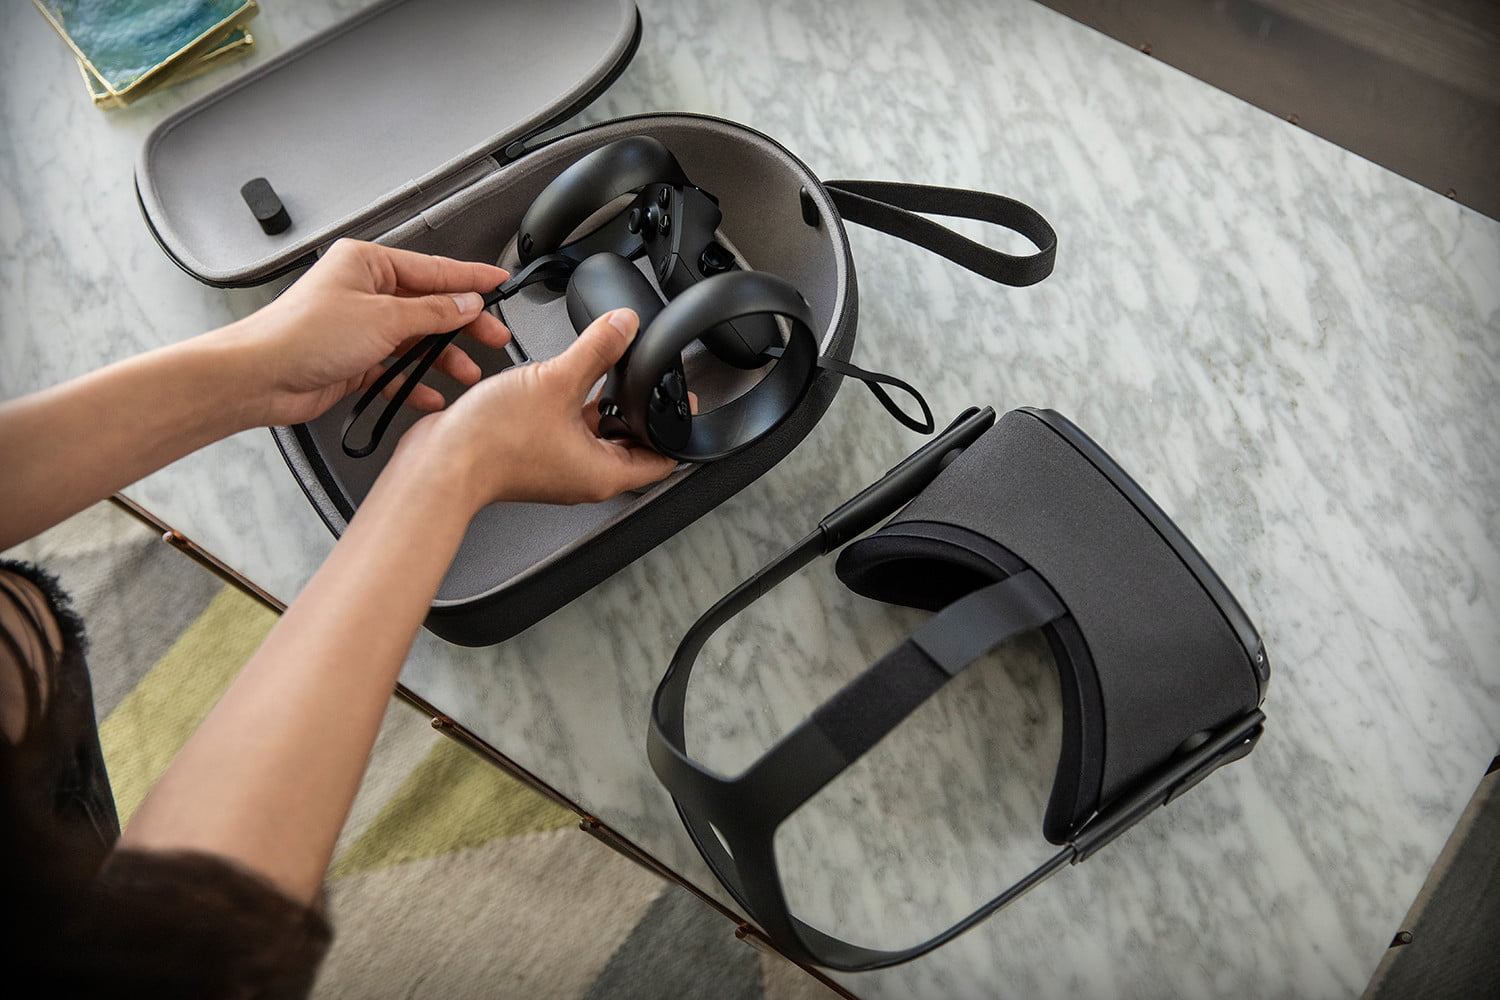 Oculus Quest Review: VR for the Masses At Last | Digital Trends